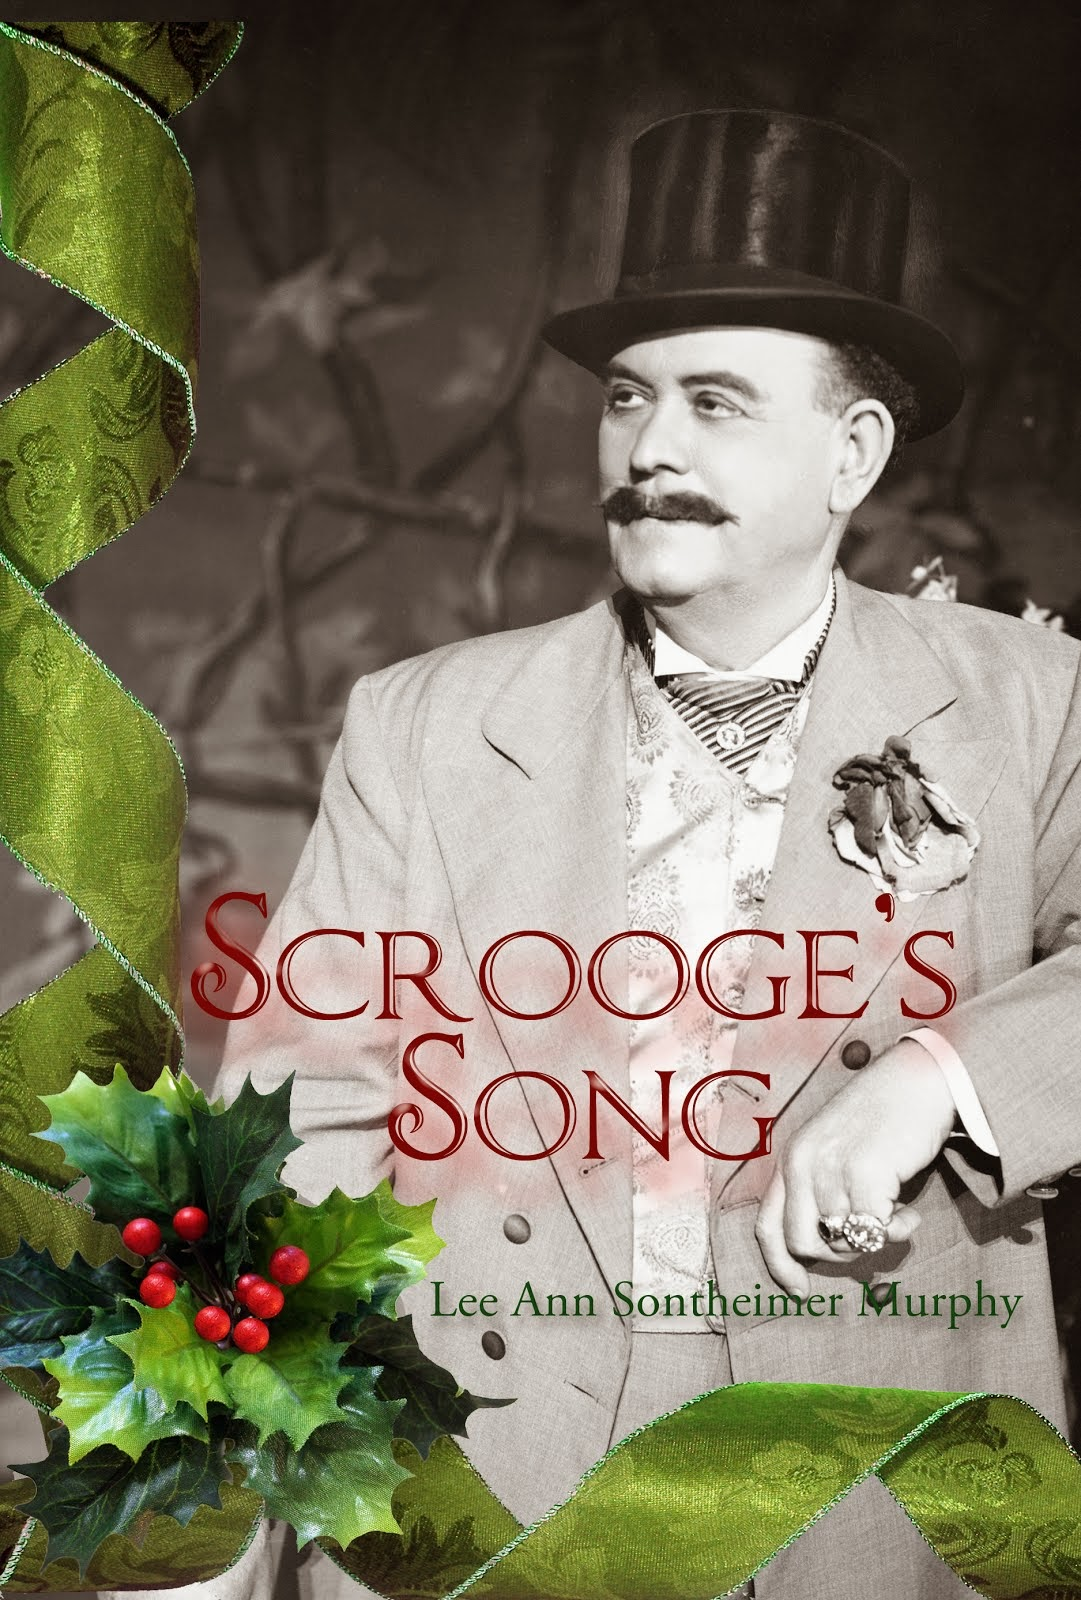 Scrooge's Song by Lee Ann Sontheimer Murphy